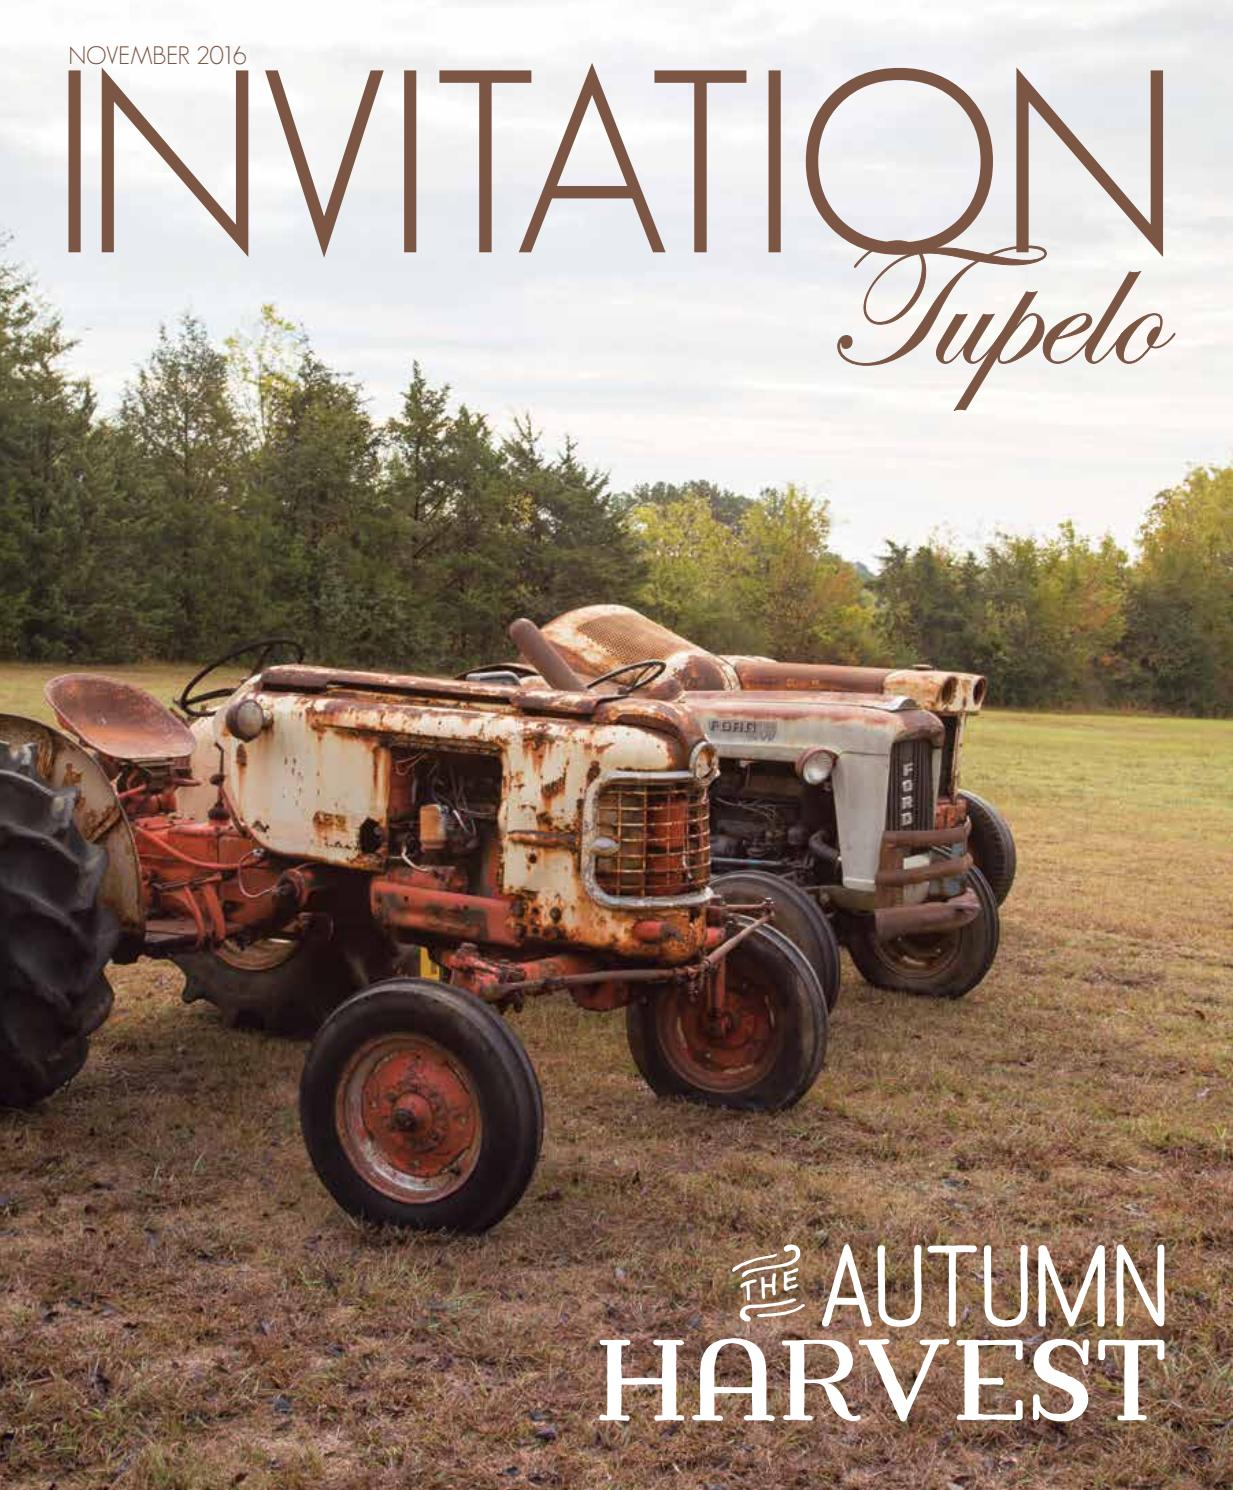 Invitation Tupelo - November 2016 by Invitation Magazines - issuu